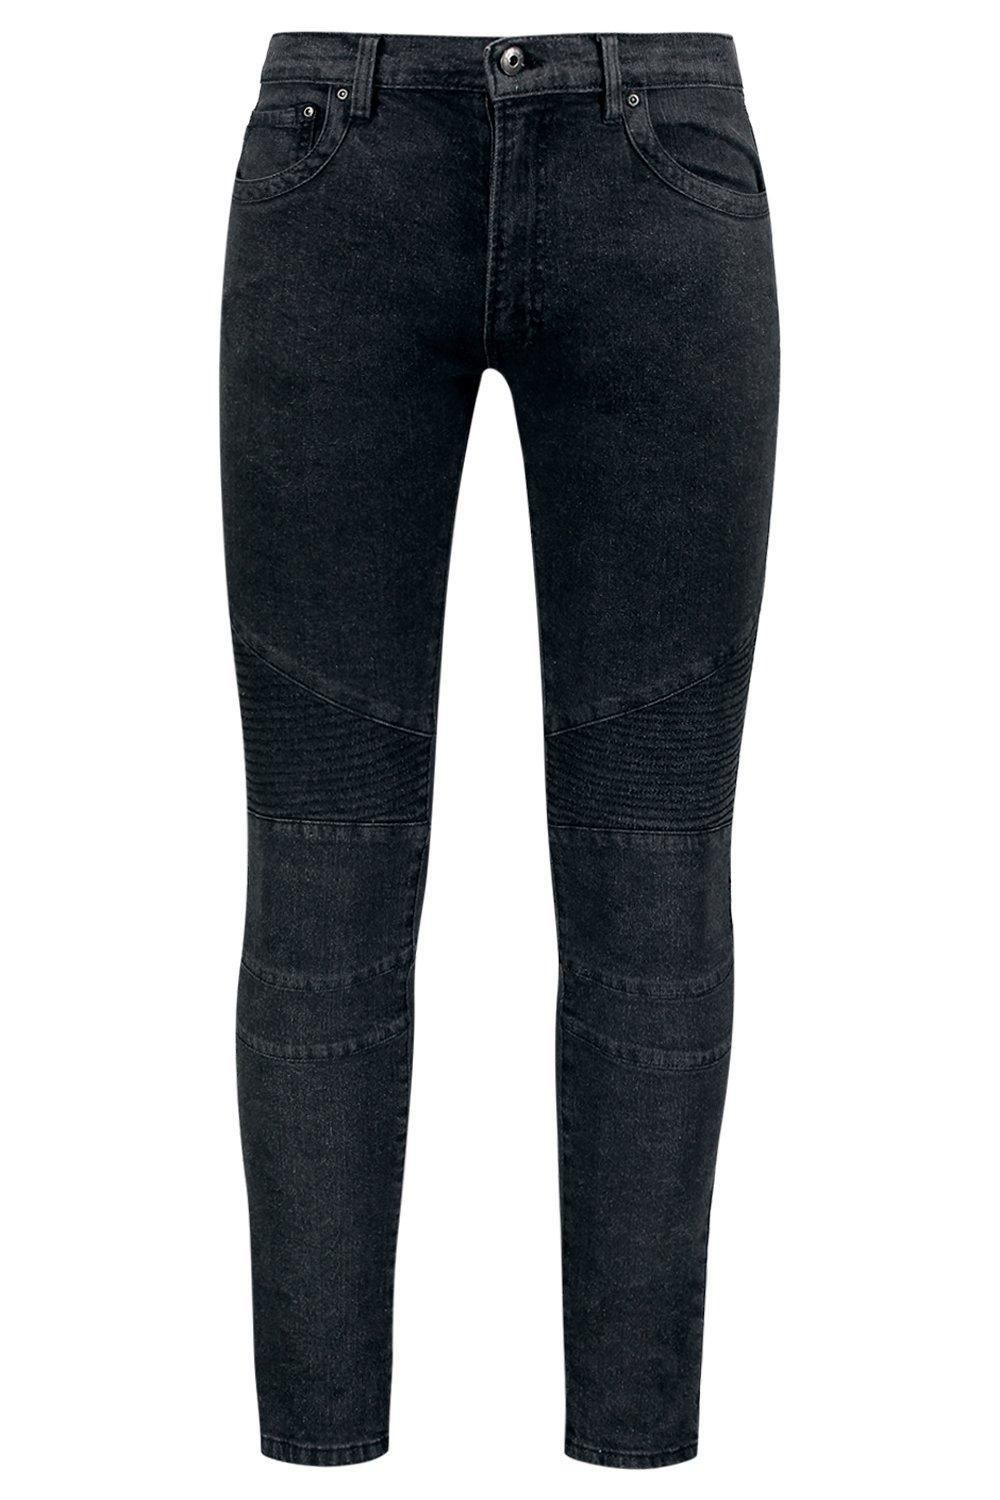 boohooMAN charcoal Skinny Fit Jeans with Biker Detailing